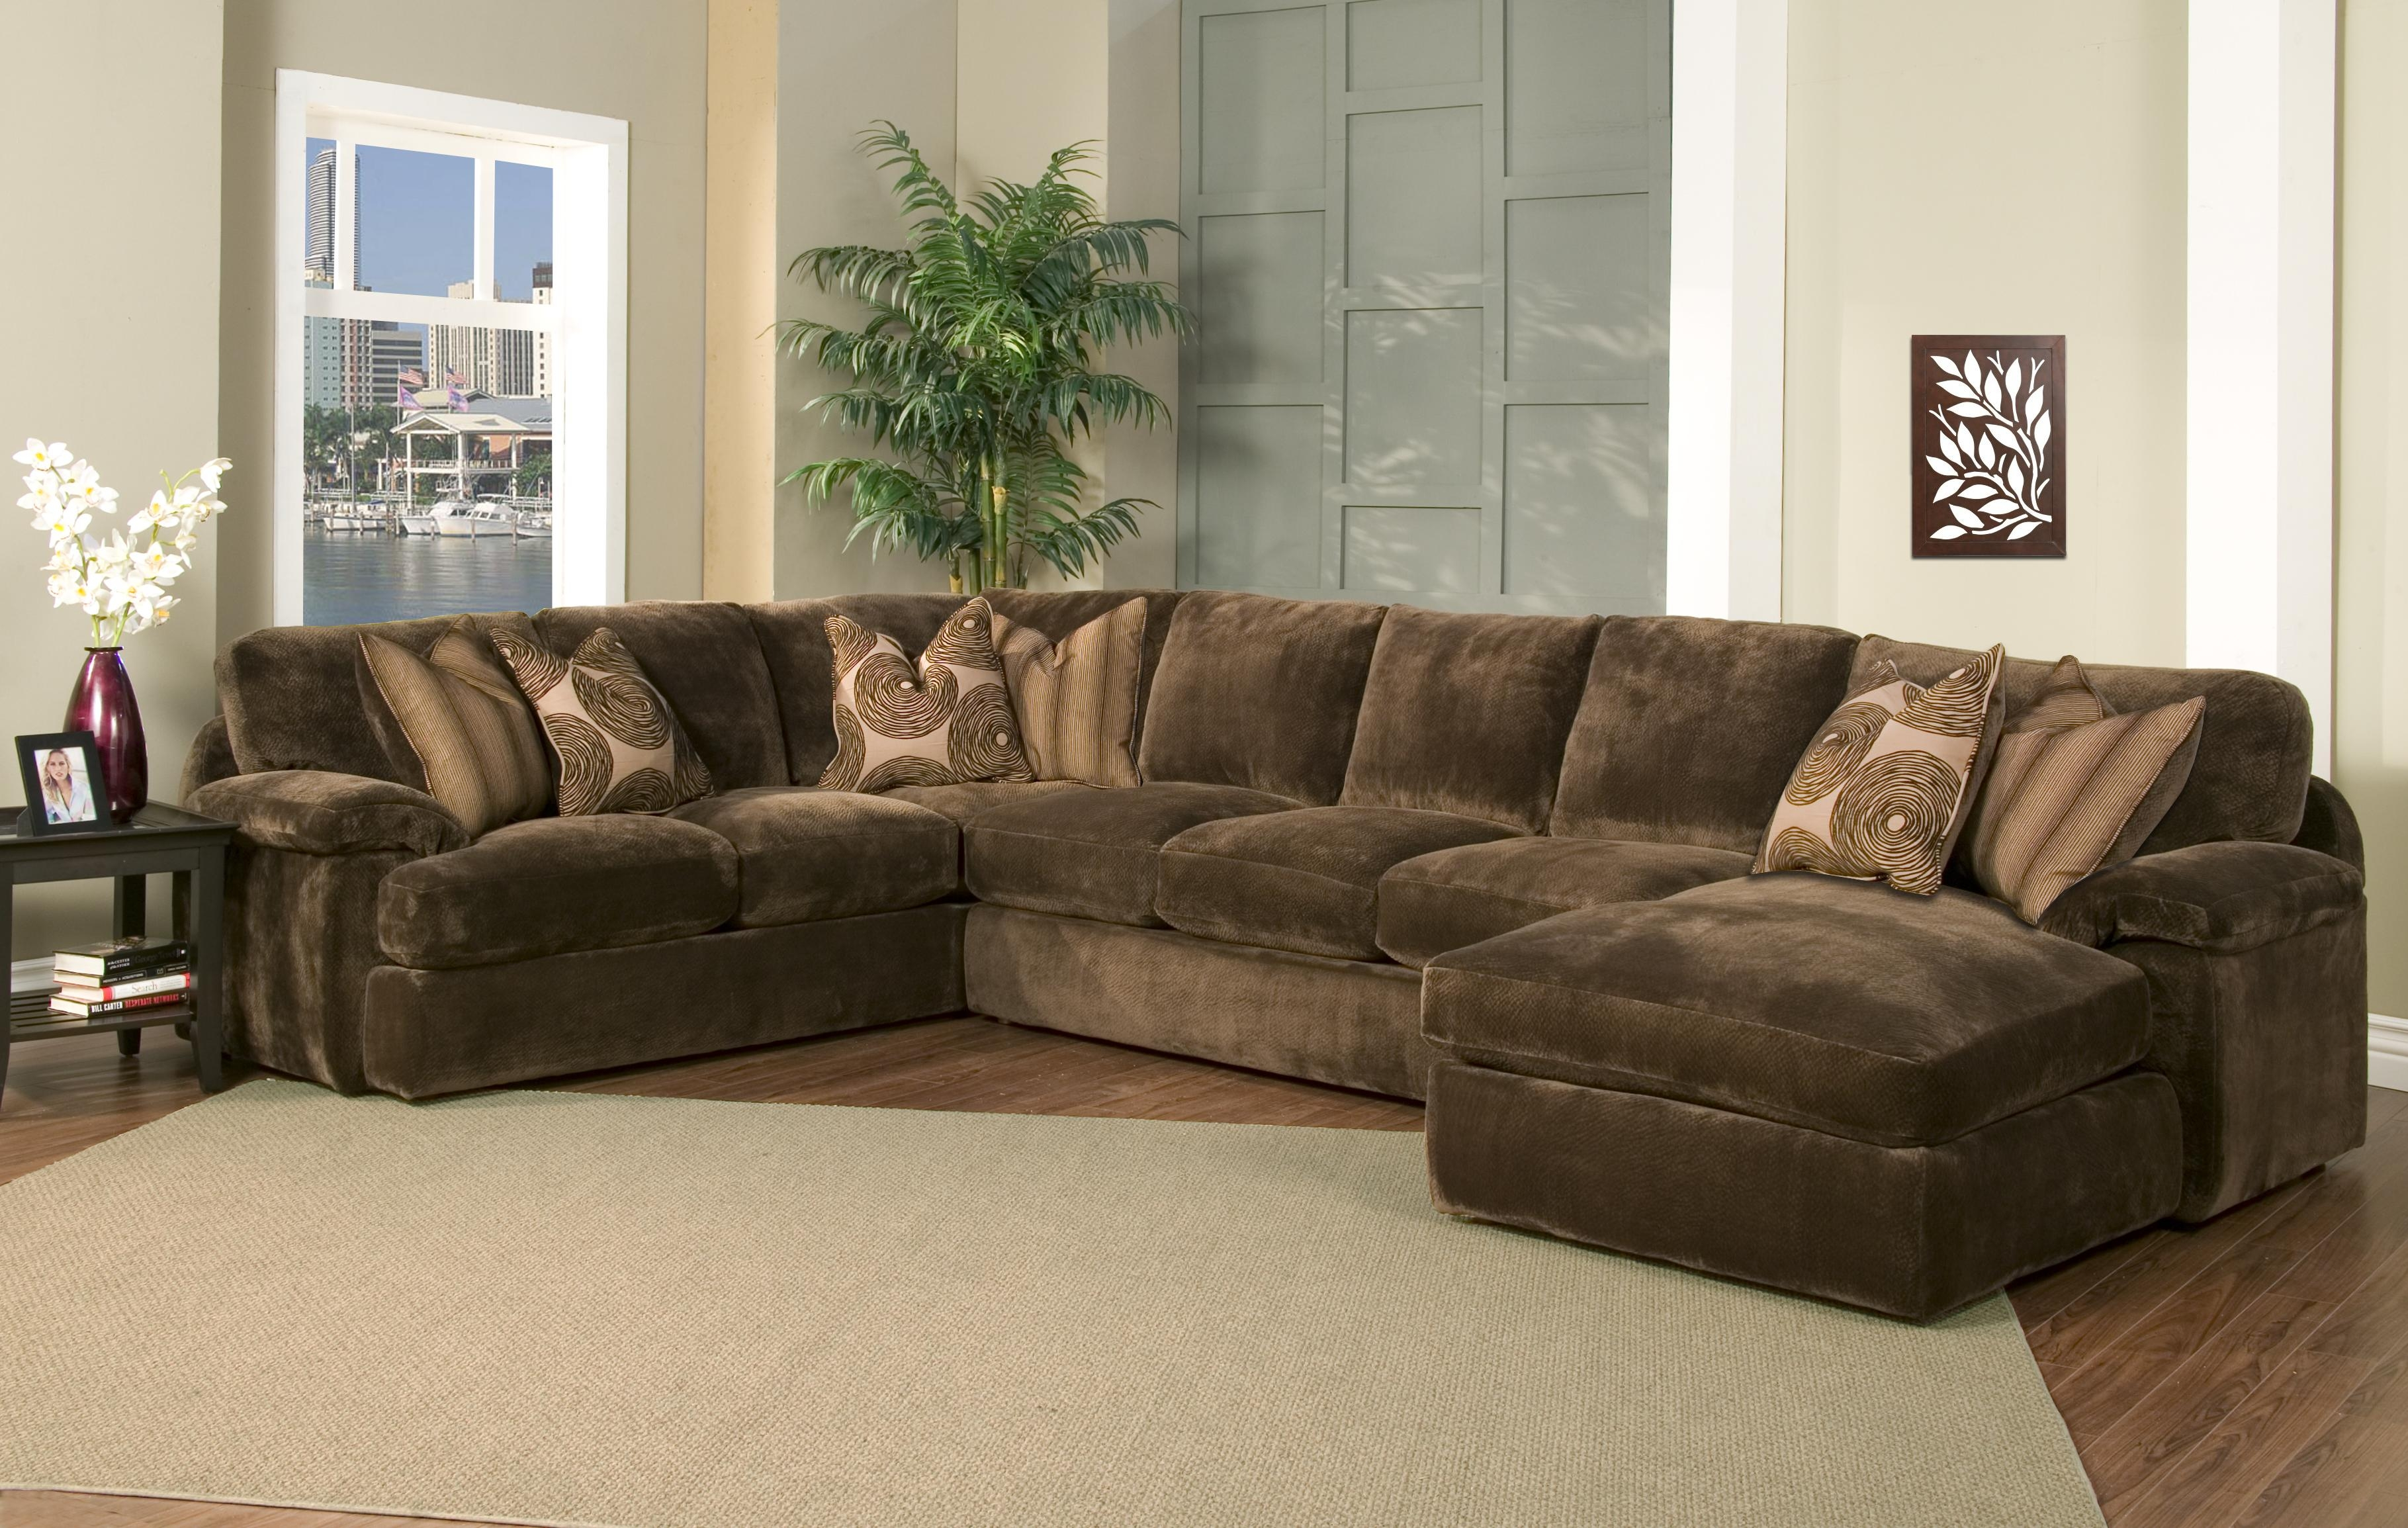 Robert Michaels Sofas And Sectionals With Chocolate Brown Sectional (Image 12 of 15)